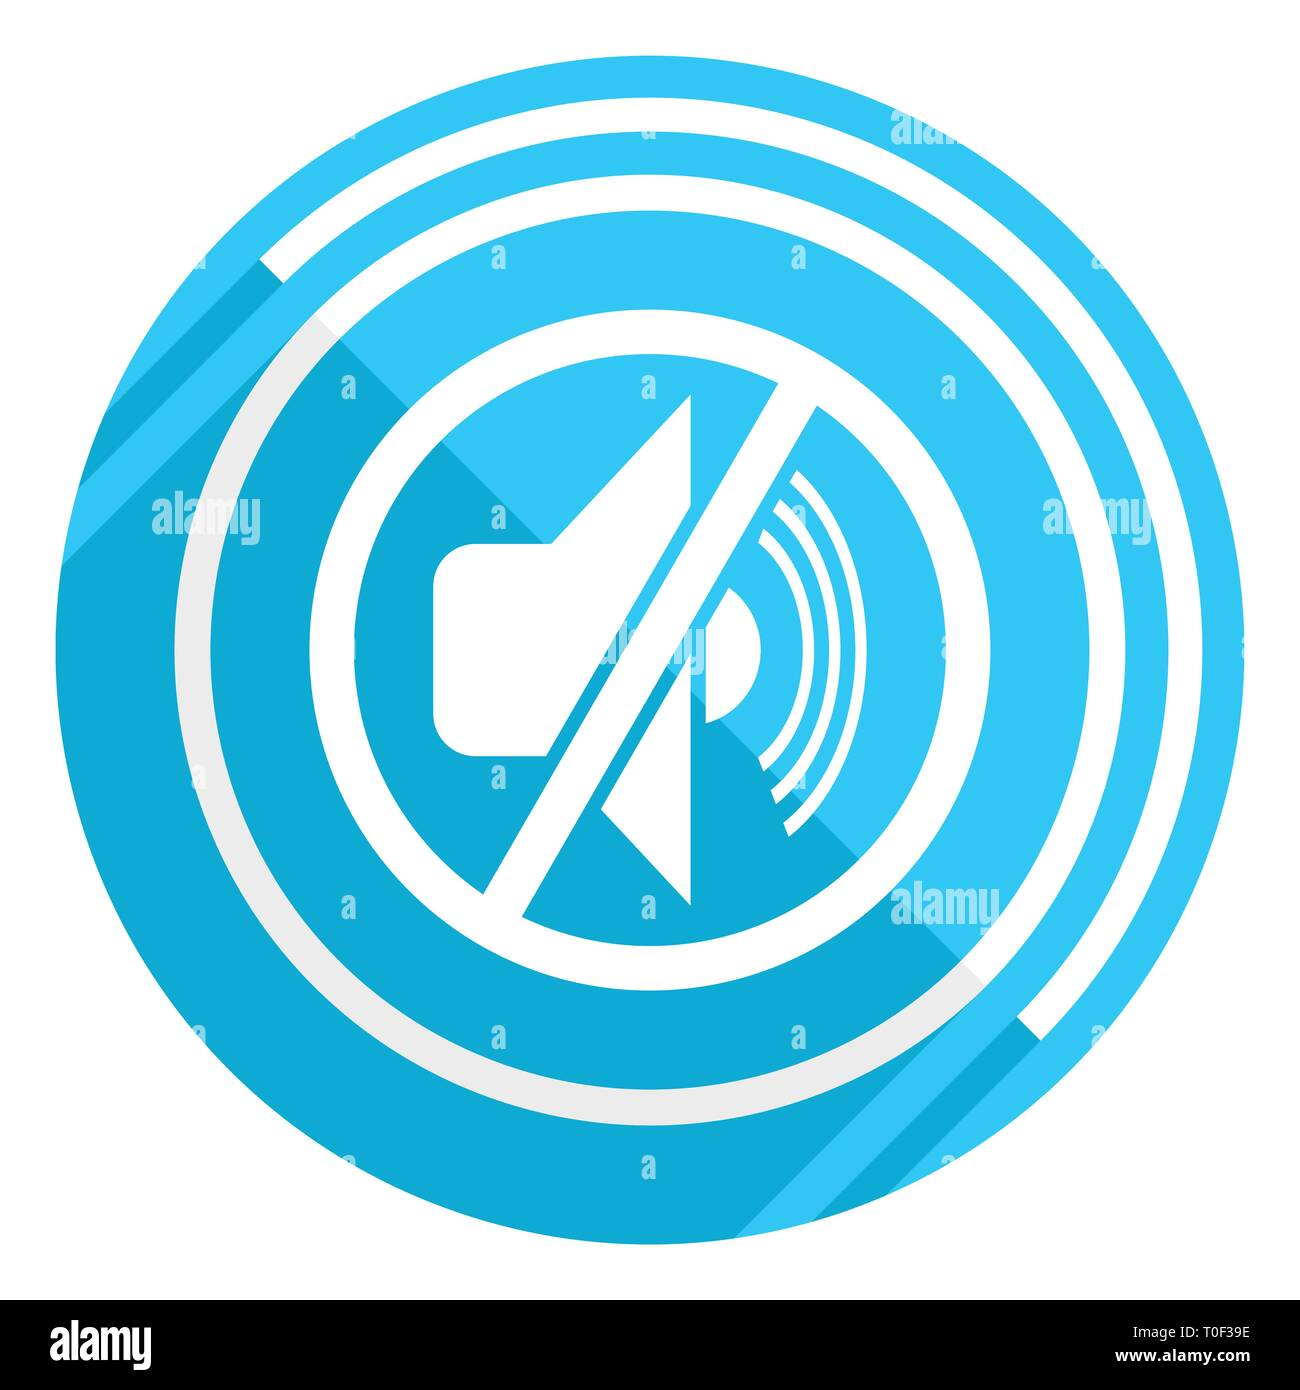 Mute flat design blue web icon, easy to edit vector illustration for webdesign and mobile applications - Stock Image